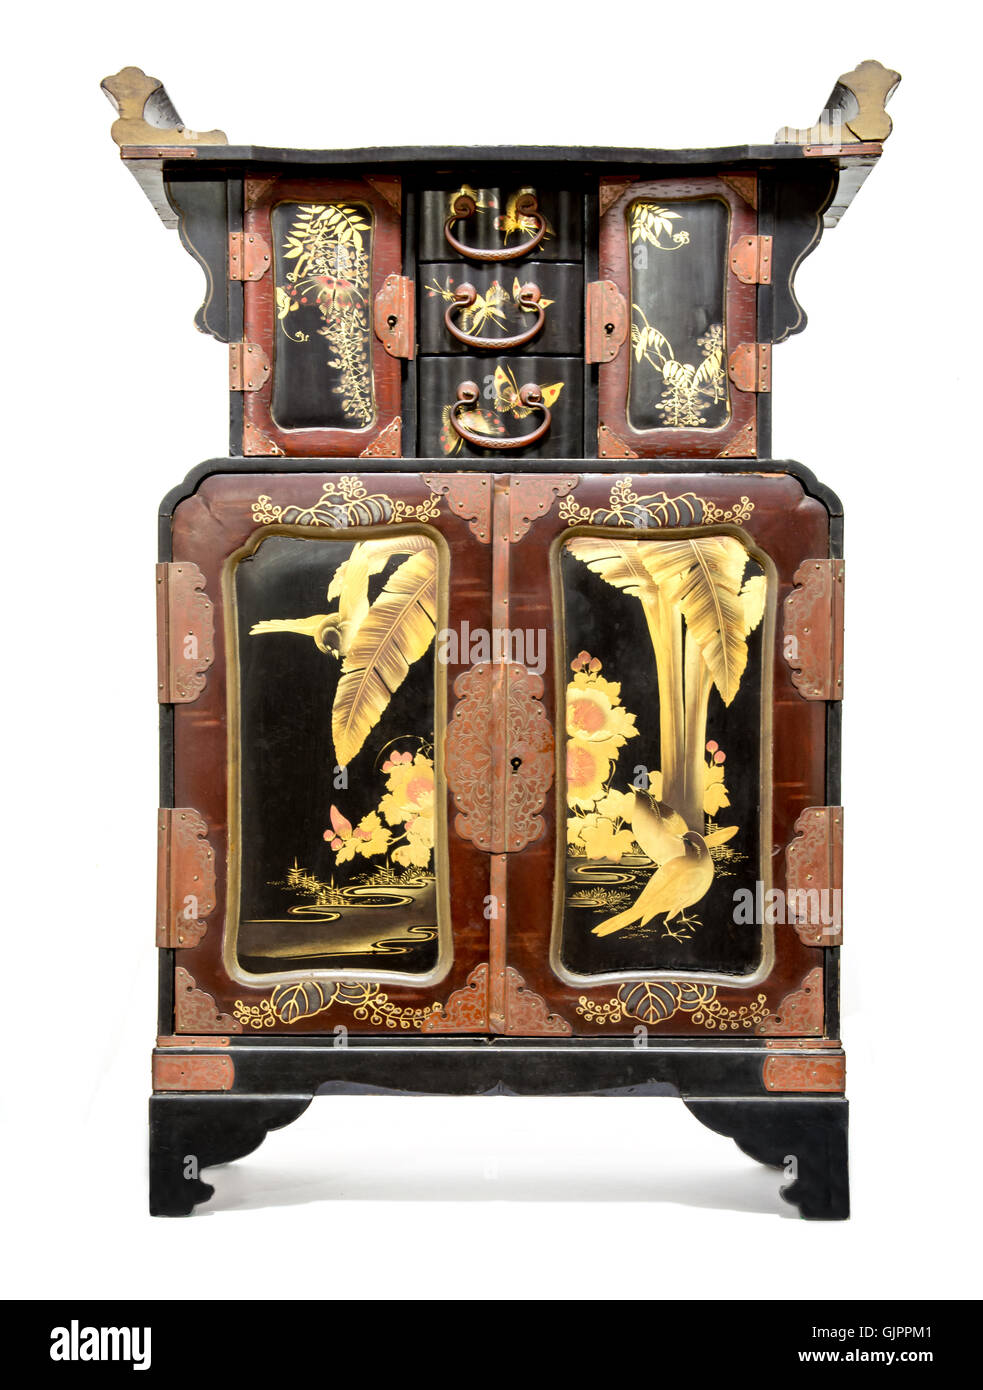 Antique Japanese Black Lacquer and Gold Table Cabinet. - Stock Image - Antique Japanese Cabinet Stock Photos & Antique Japanese Cabinet